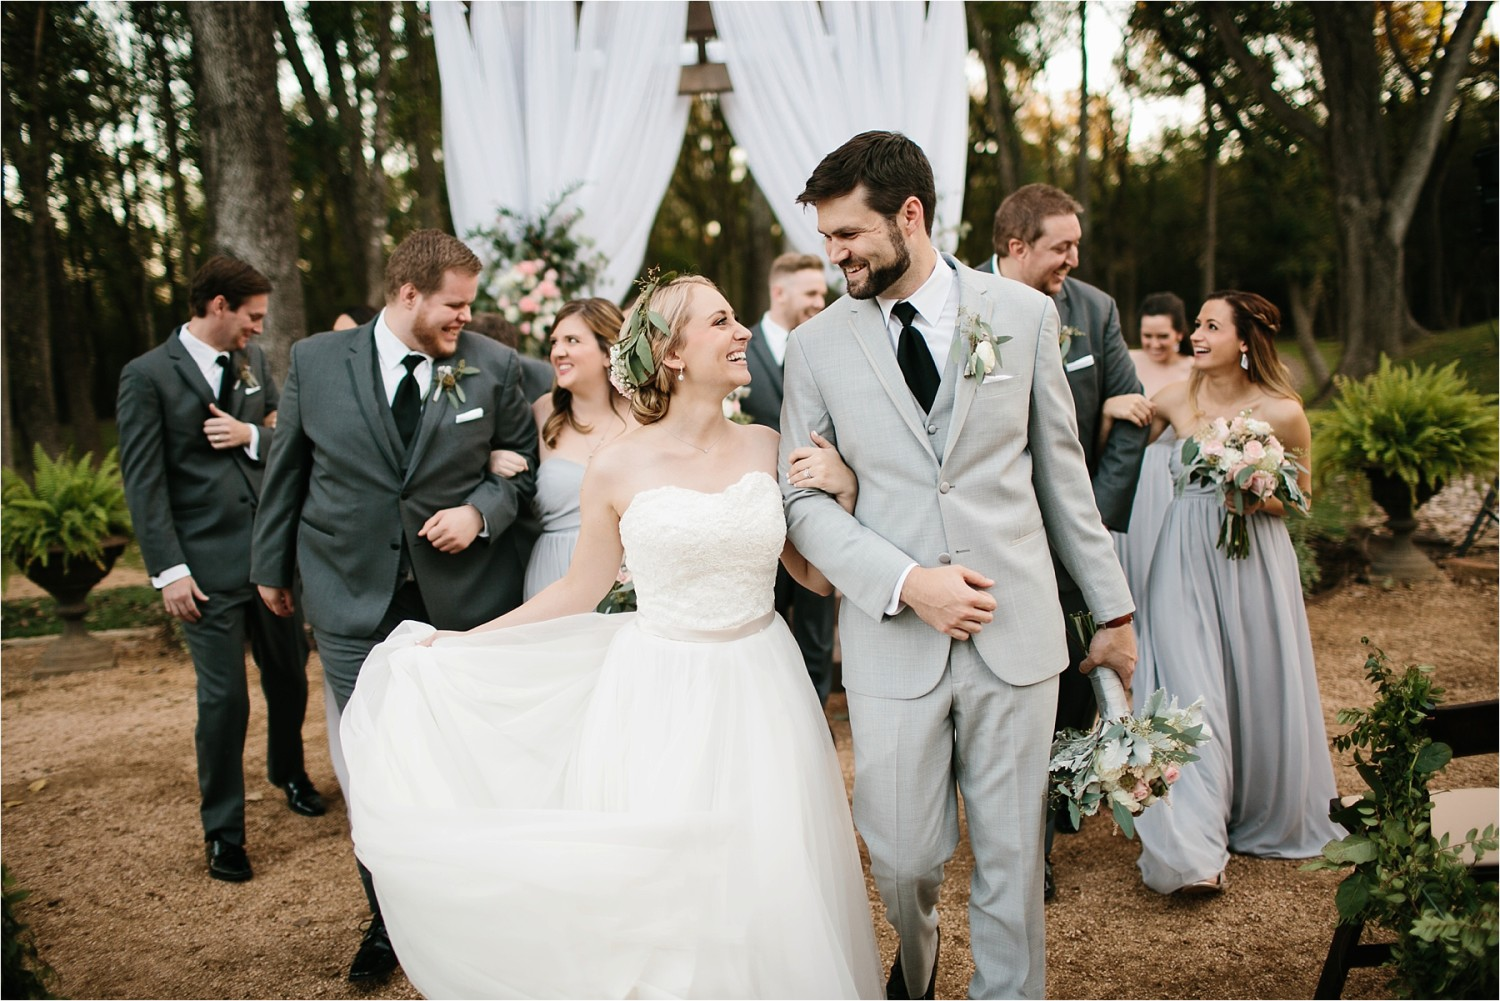 brad-lara-__-a-grey-and-blush-pink-intimate-wedding-at-hidden-waters-event-center-in-waxahachie-tx-by-north-texas-wedding-photographer-rachel-meagan-photography-_-068